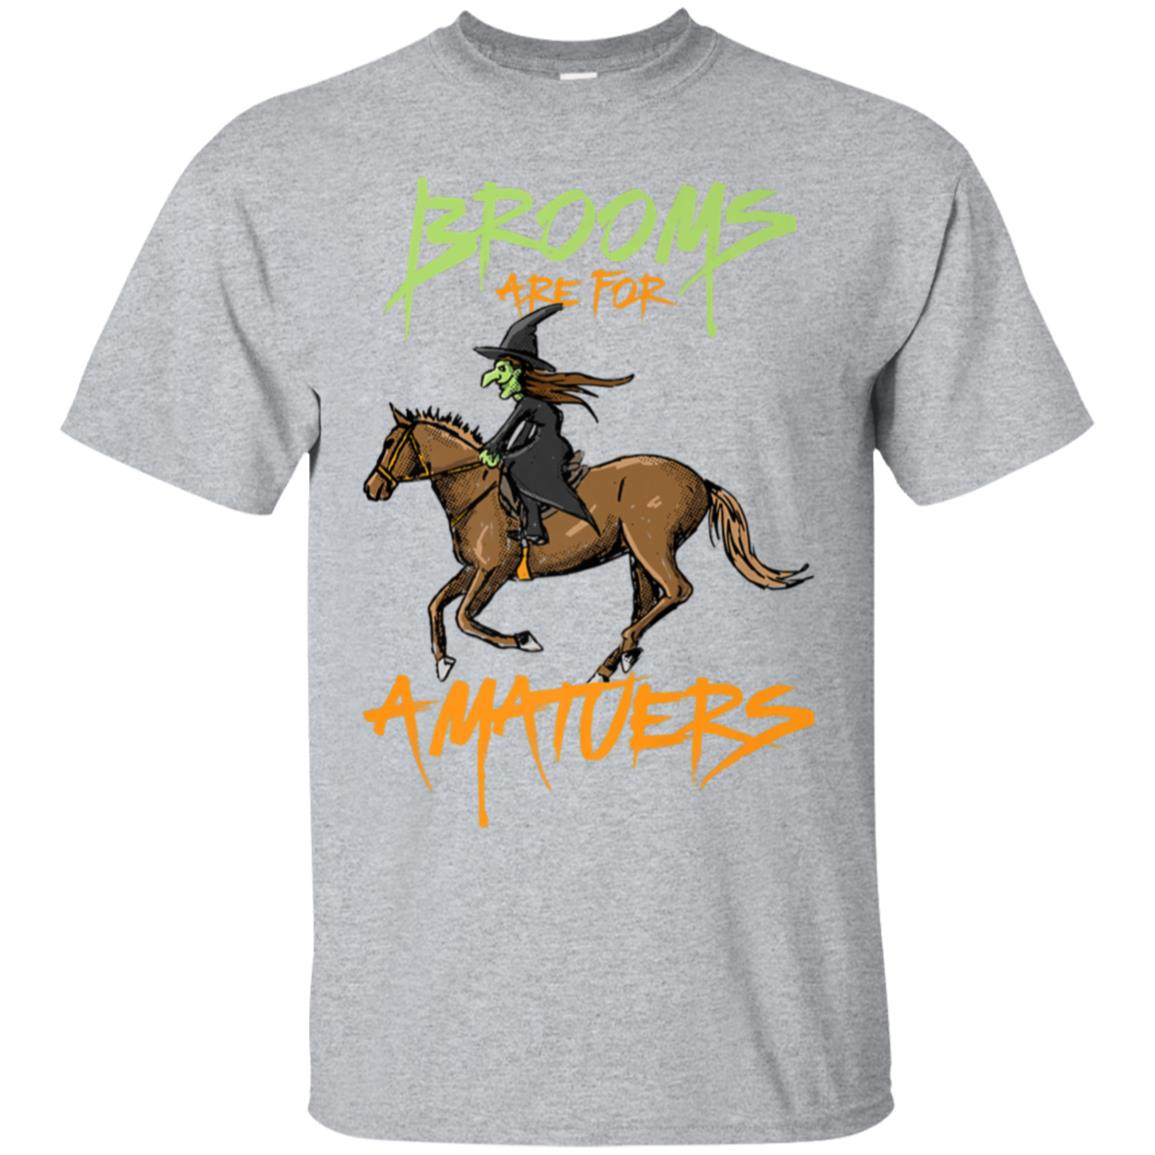 Brooms Are For Amateurs Horse Riding Shirt Halloween Costume 99promocode